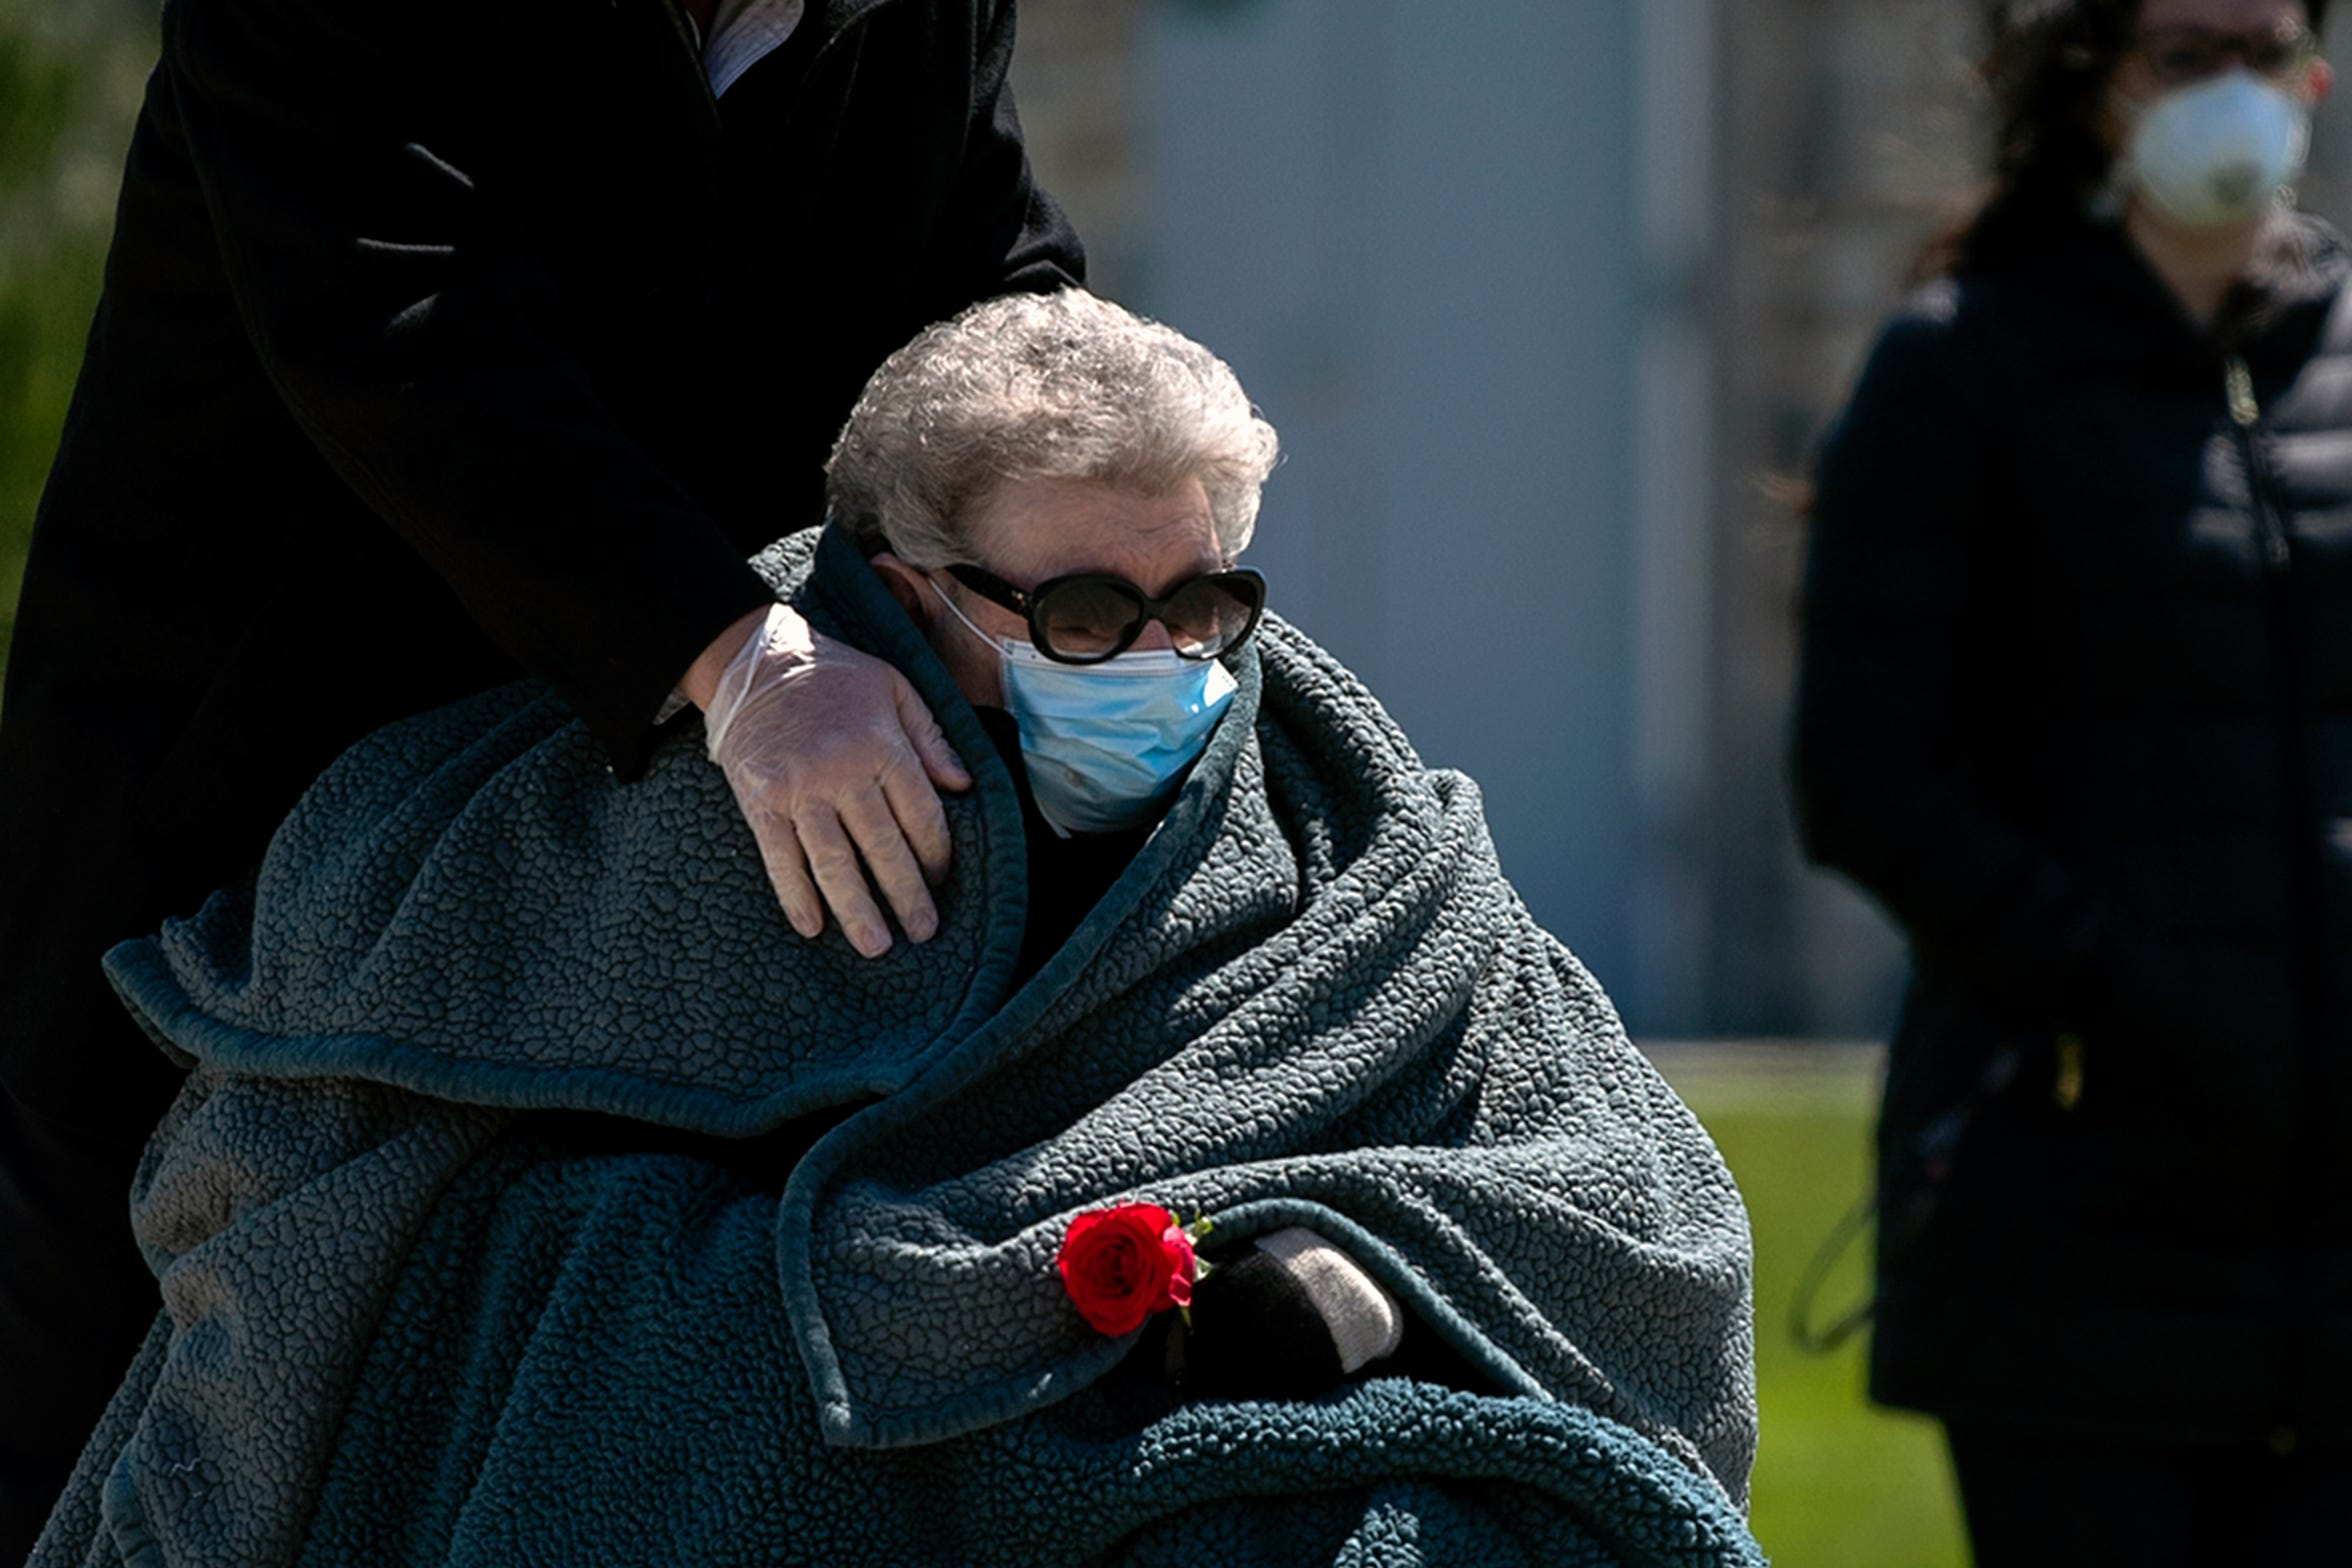 "Elizabeth ""Betty"" Taggart, 92, is embraced by her son Kirk Taggart as she mourns her husband Herman Taggart Wednesday, April 22, 2020 at Gloucester County Veterans Cemetery in Williamstown, N.J. Elizabeth and Herman were high school sweethearts and got married in 1949 following his World War II service in the Navy. ""We plan on having a second memorial when all this settles. In our family, closure for us has always been congregation, being together and laughing. We don't have that now. We have to go back to our homes and isolate. That for me has been the toughest challenge,"" said Herman's daughter Lynn Taggart."